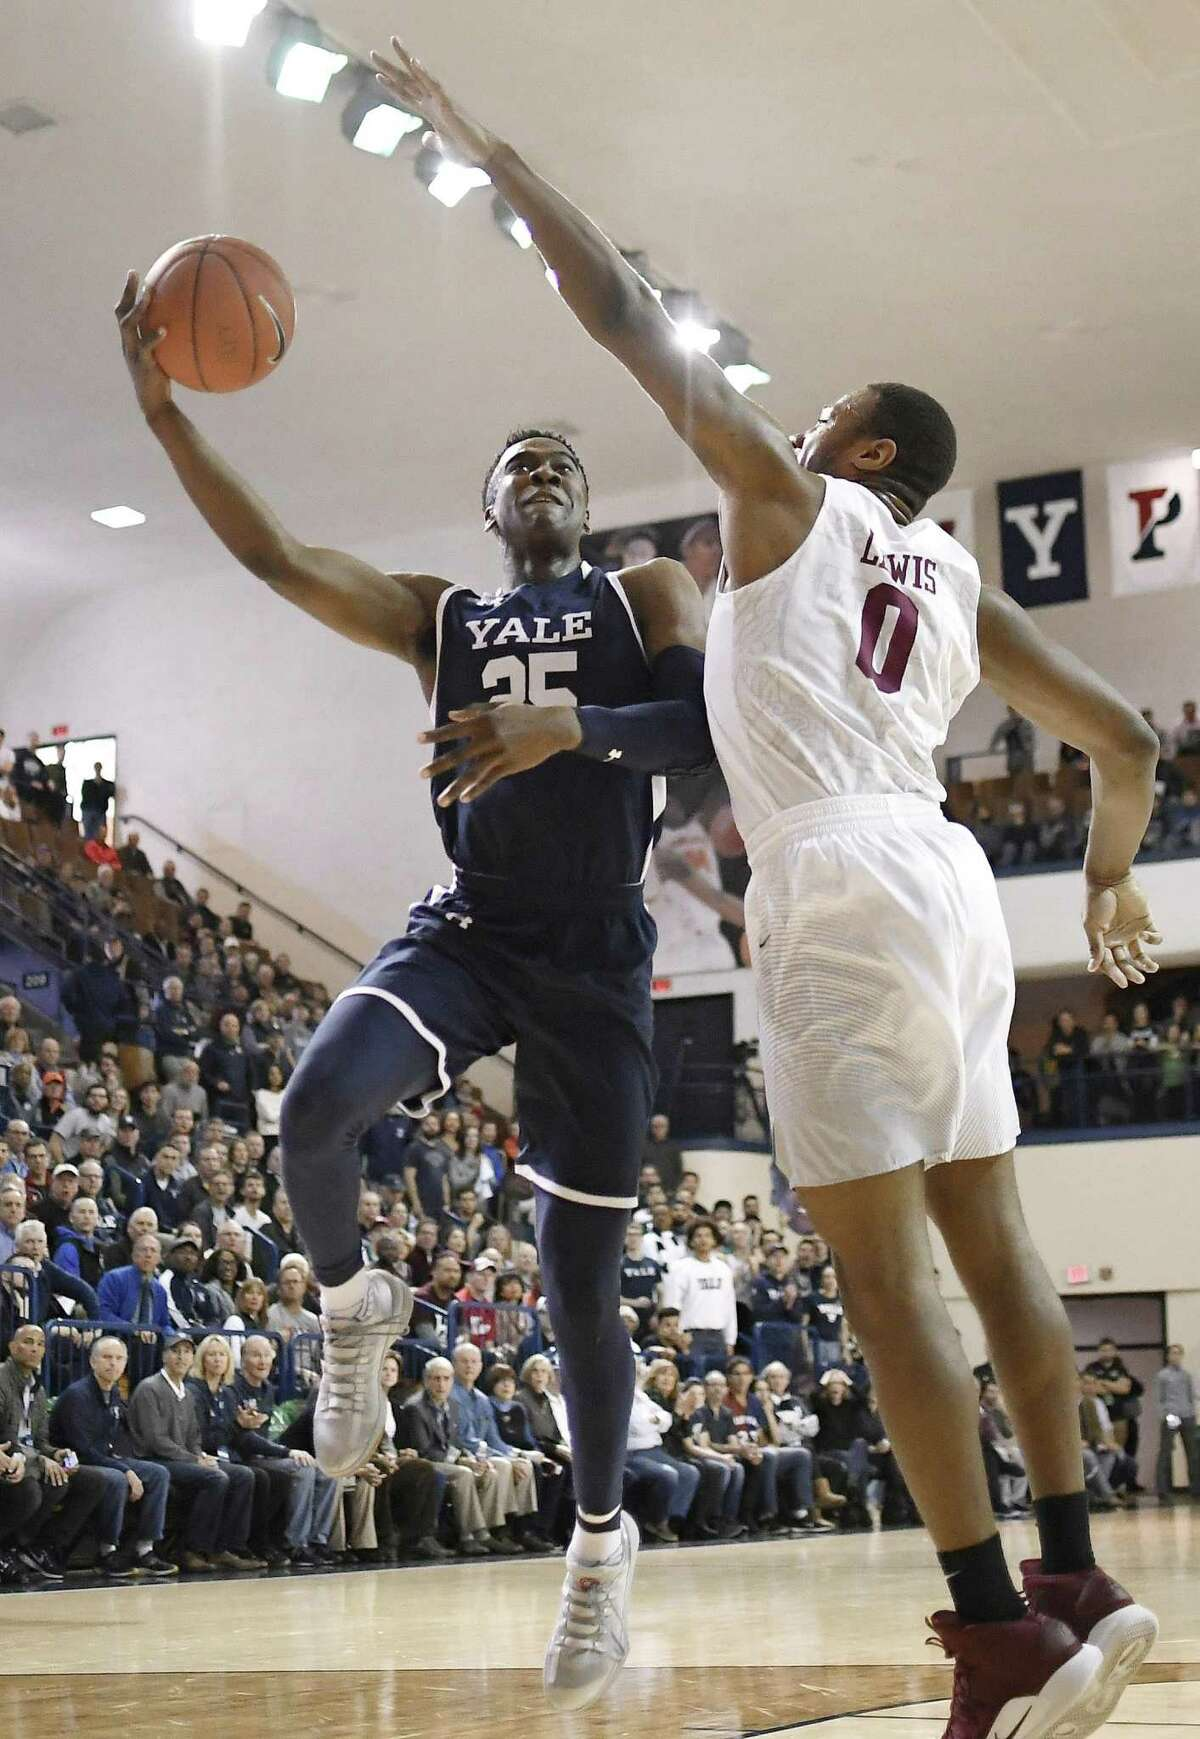 Yale junior Miye Oni has a good chance to be selected in the second round of the 2019 NBA Draft.